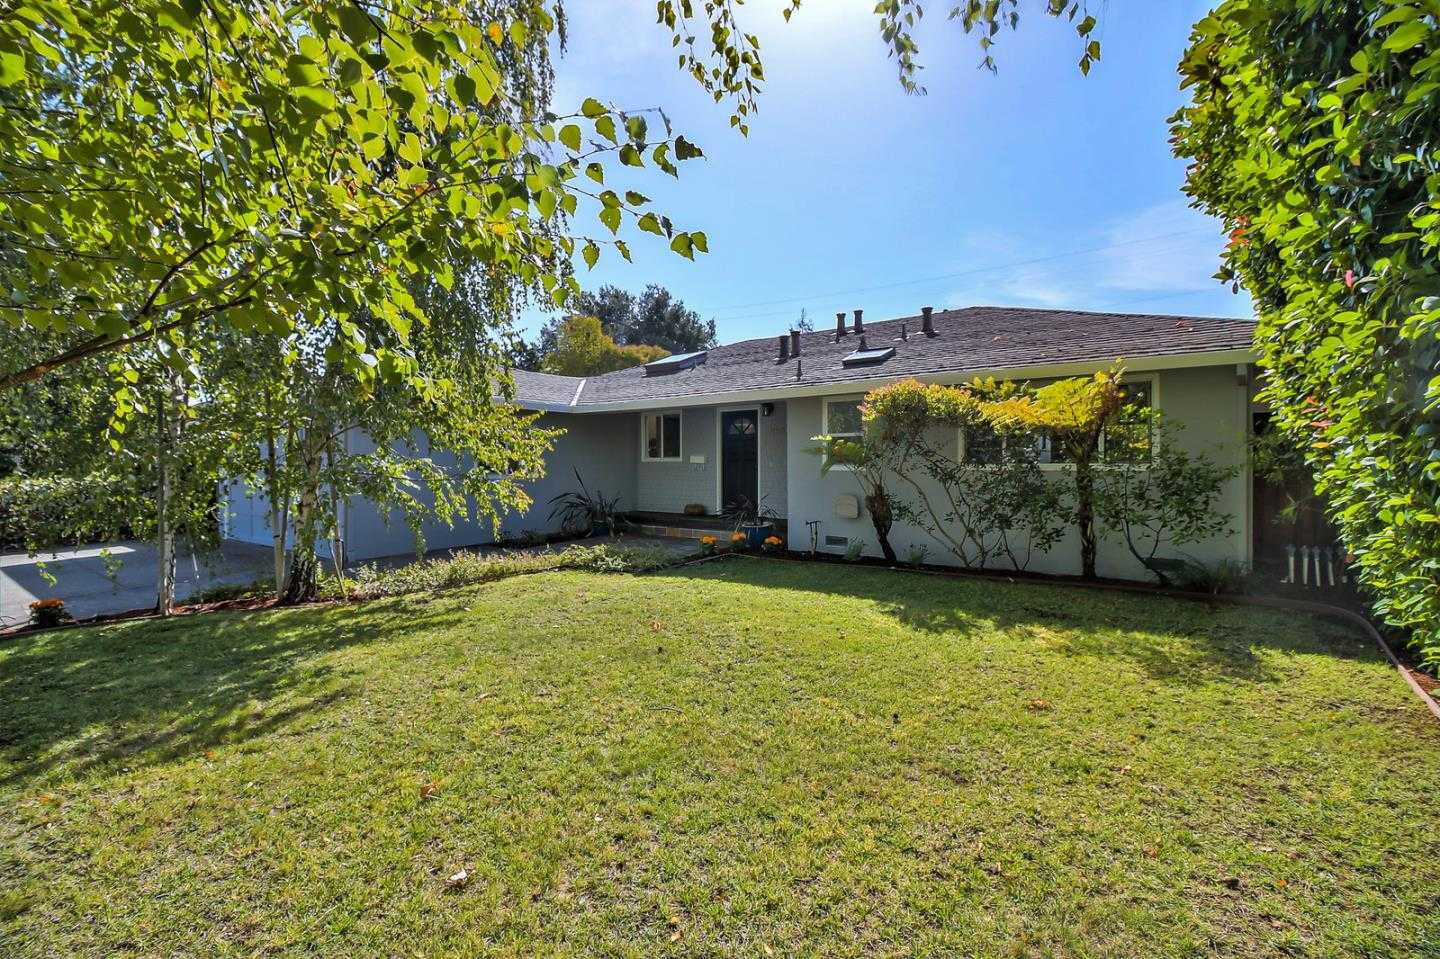 $1,885,000 - 3Br/2Ba -  for Sale in Mountain View